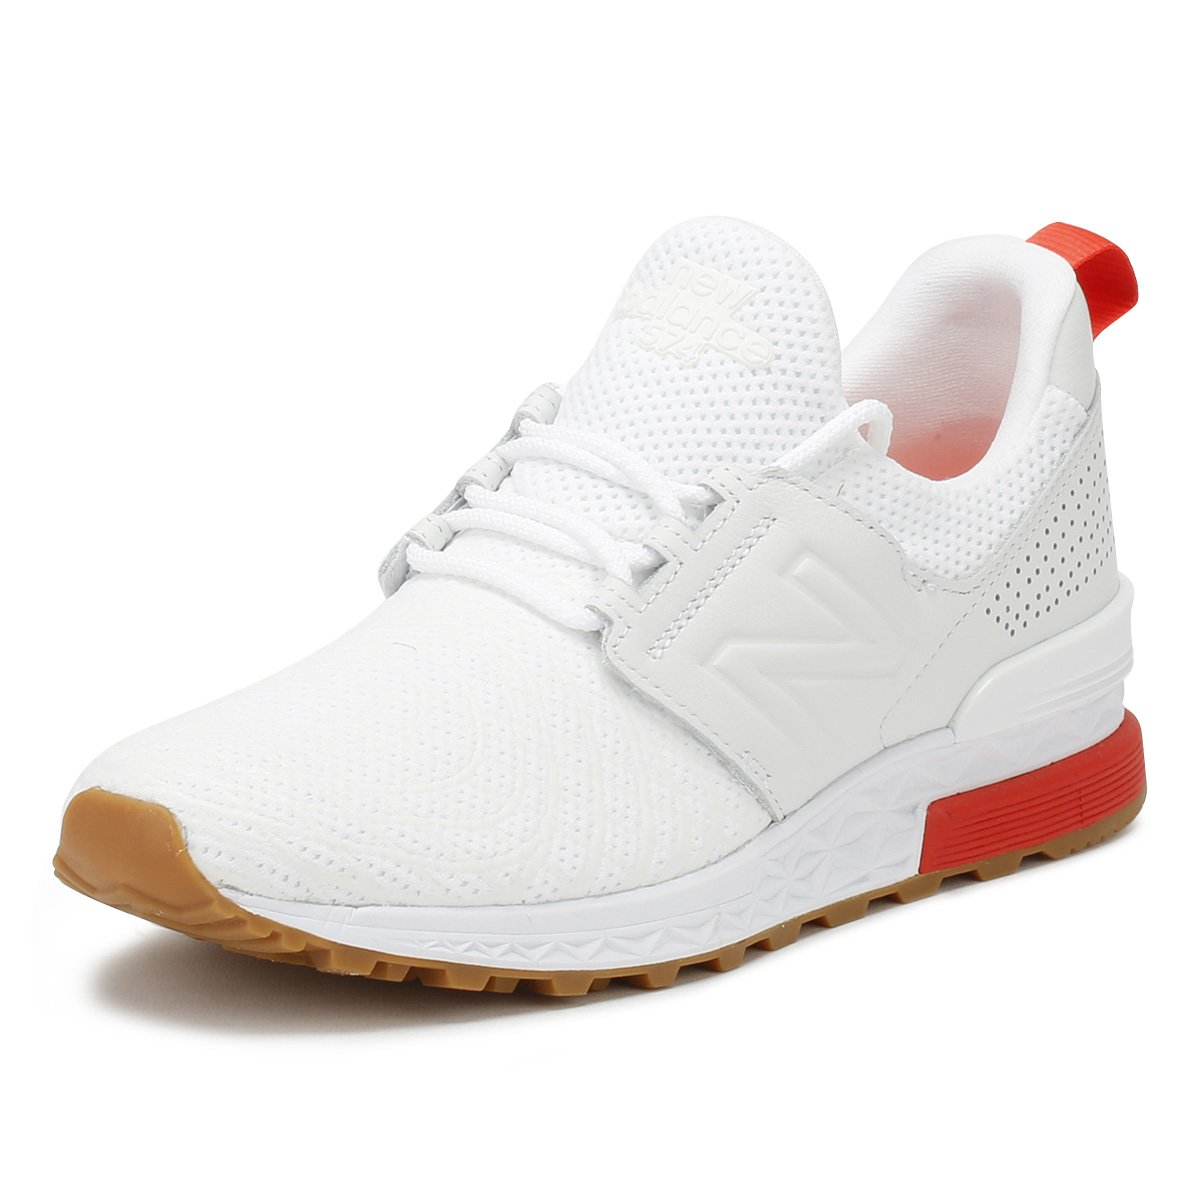 check out a19b7 7e5d8 Amazon.com | New Balance Mens White/Flame 574 Sport Sneakers ...